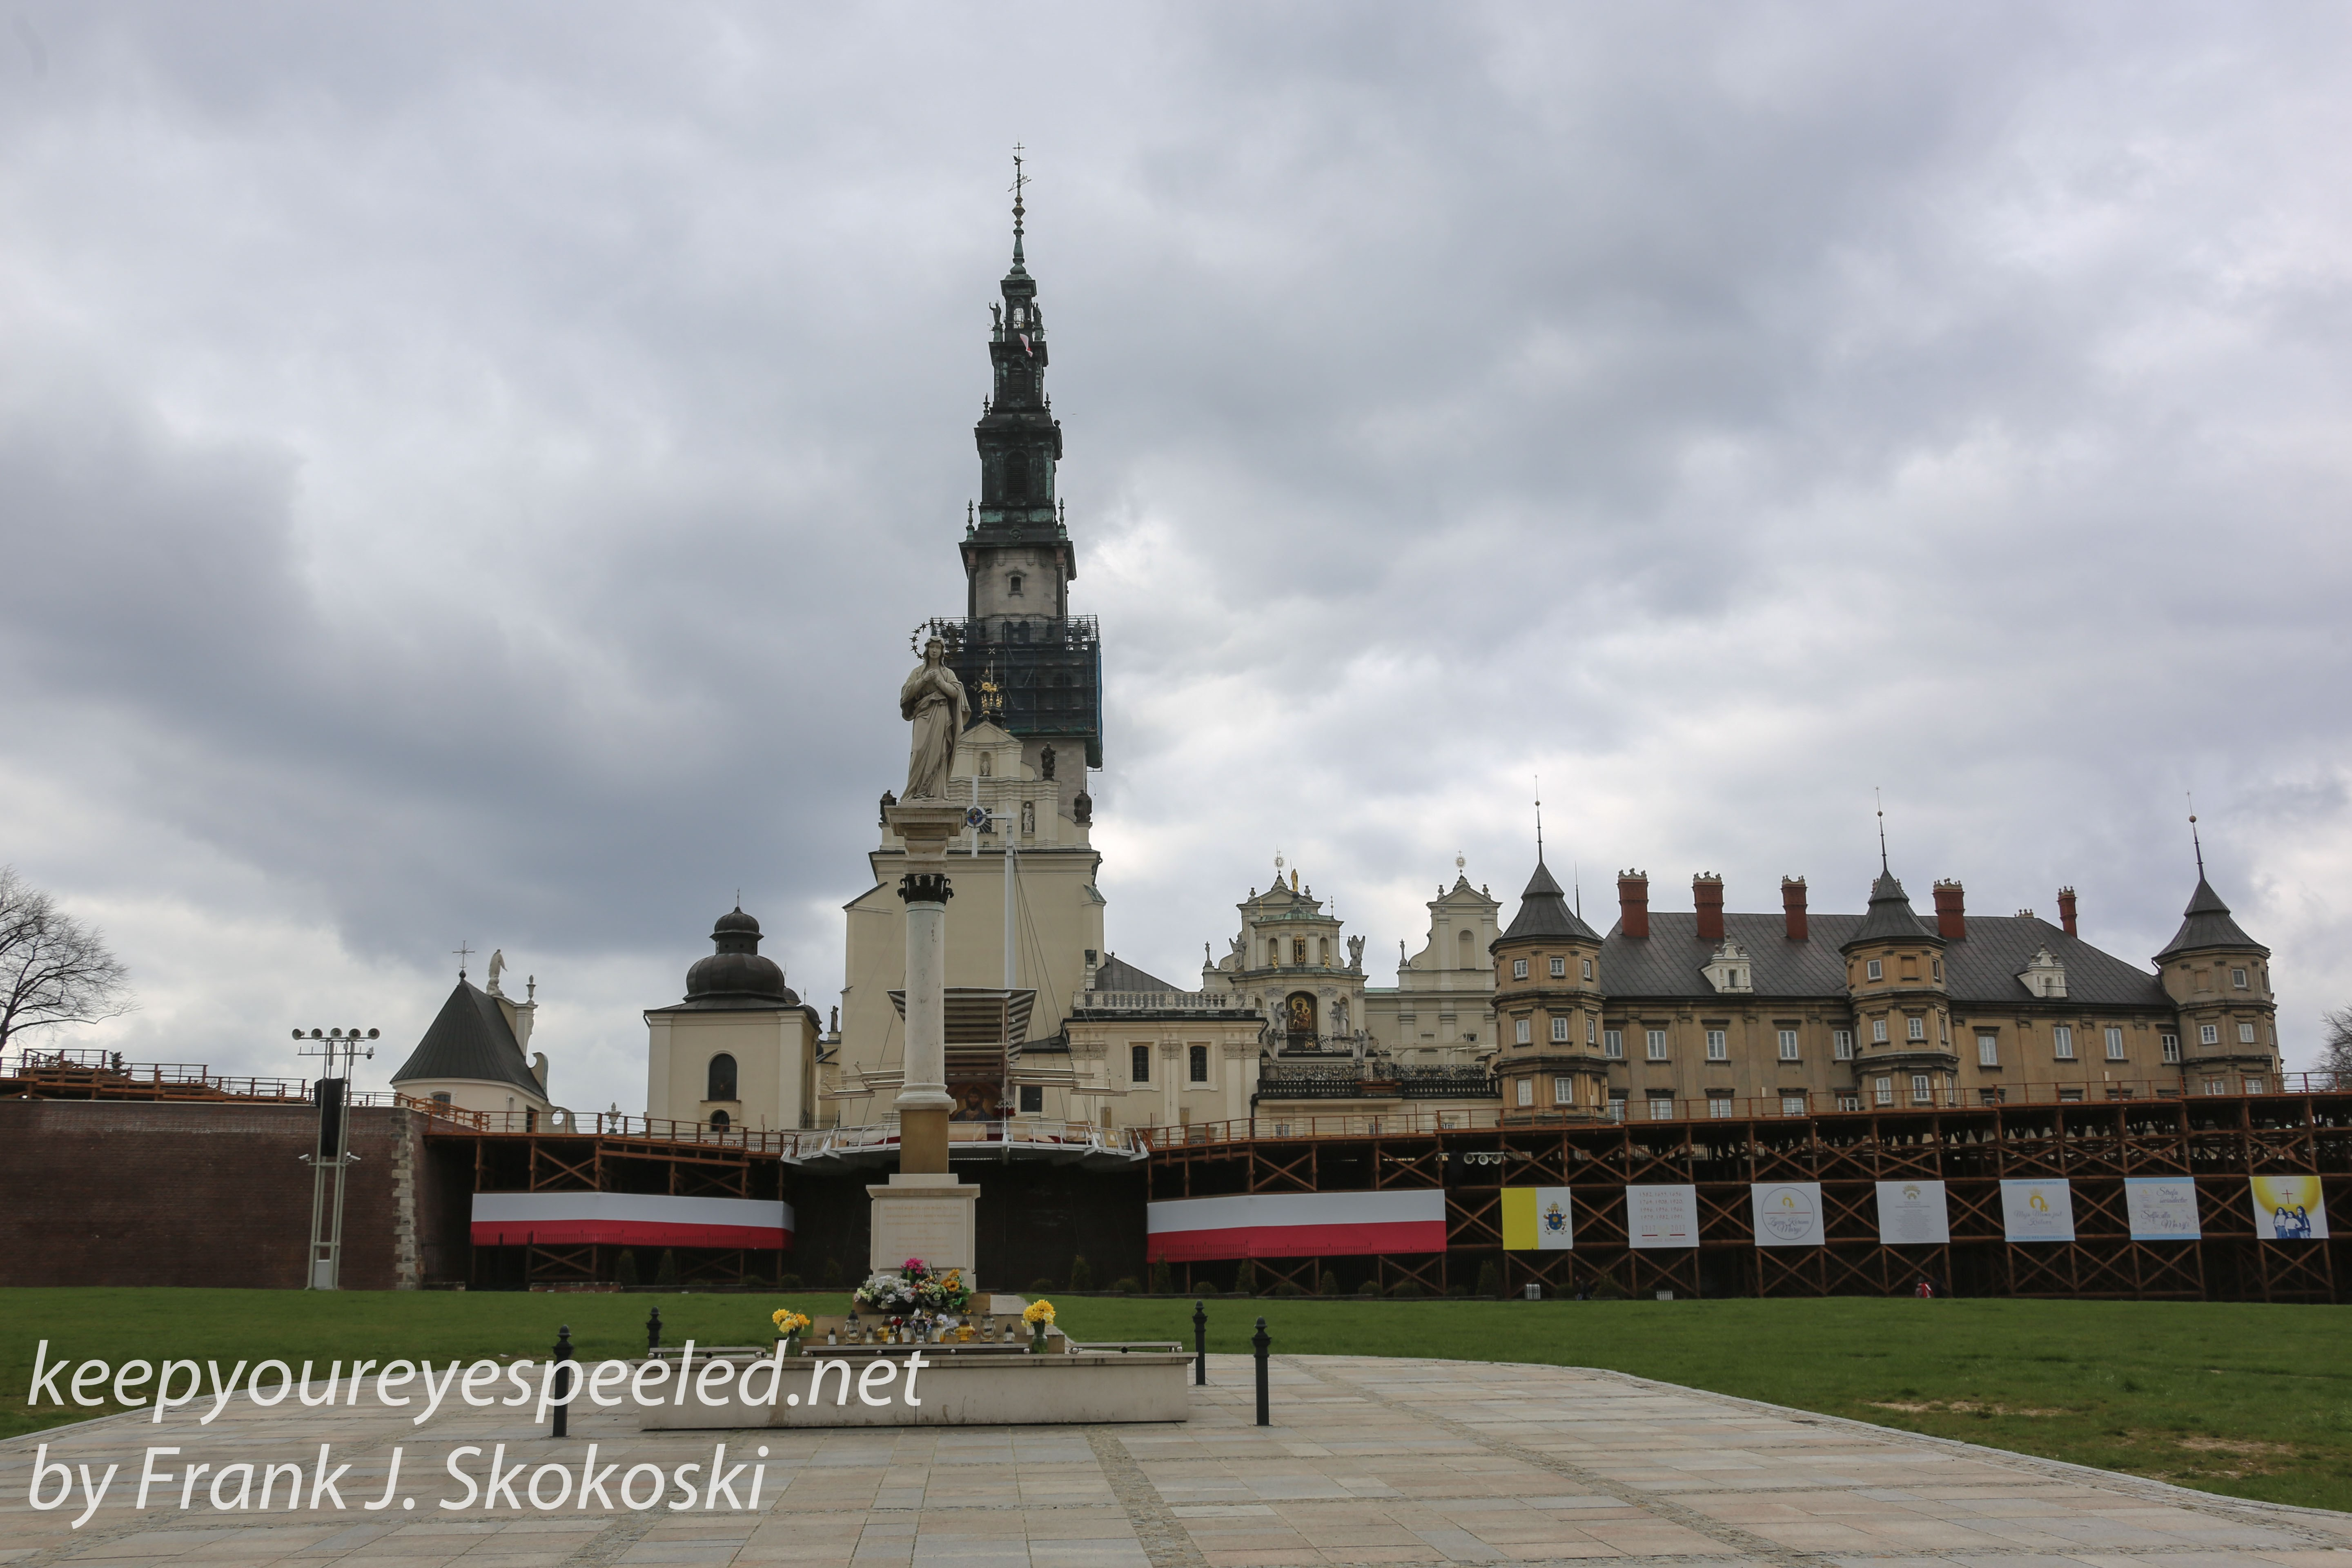 Museum of Coins and Medals Commemorating Pope John Paul II Czestochowa, Poland Day Seven- Friday April 14: Krakow To Czestochowa. A Very ...